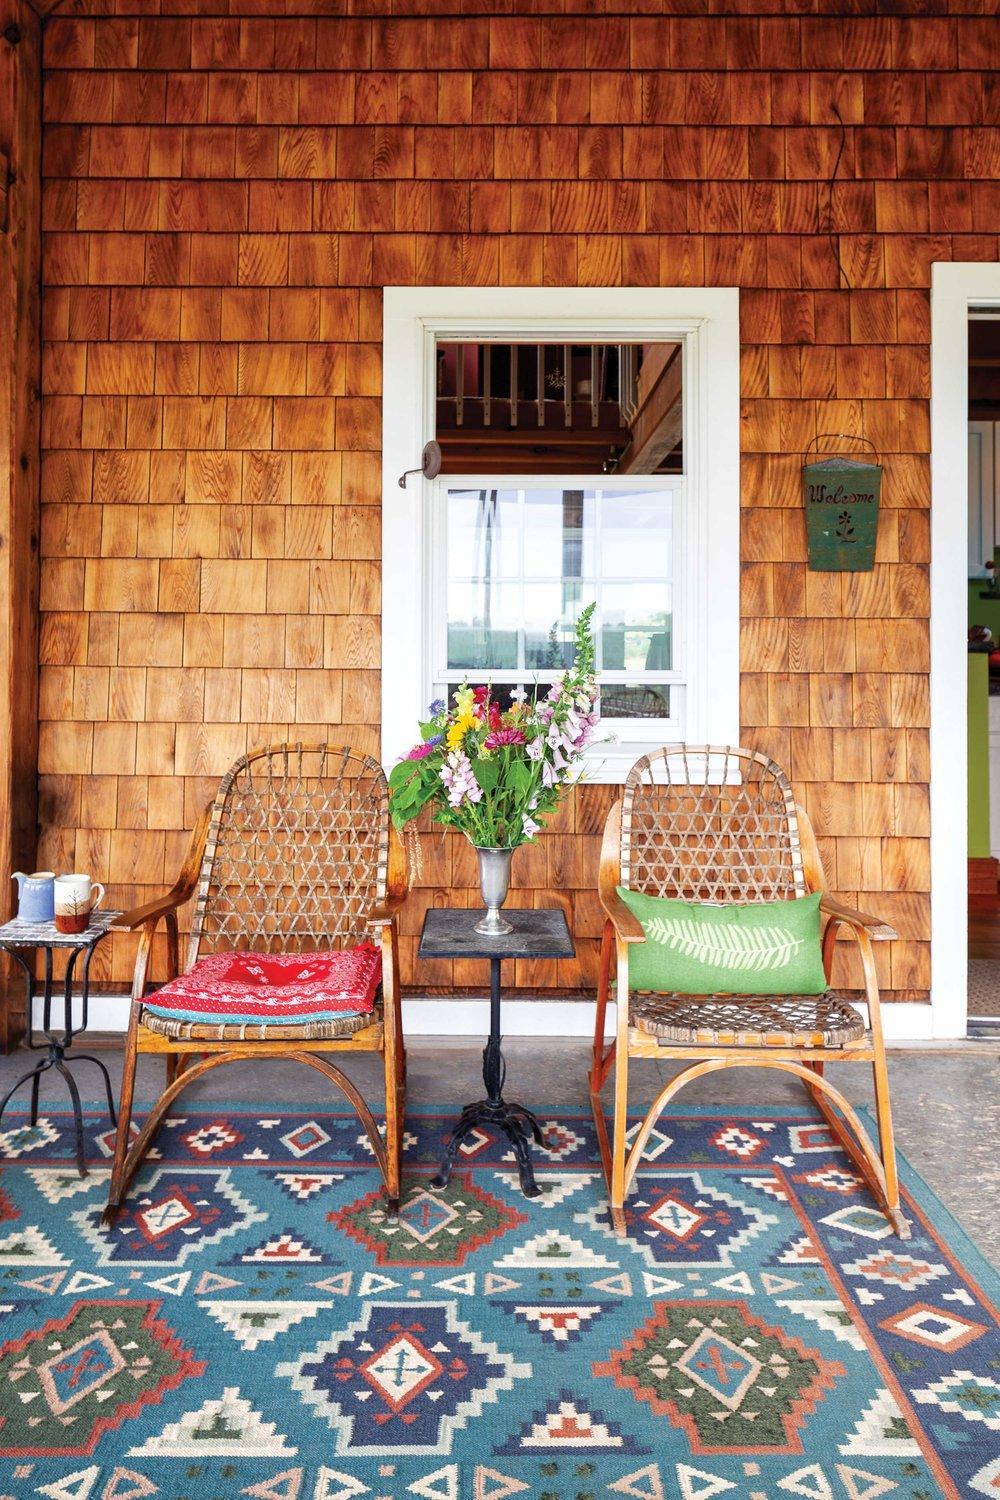 On the glassed-in porch, vintage chairs provide a cozy spot to enjoy the view.